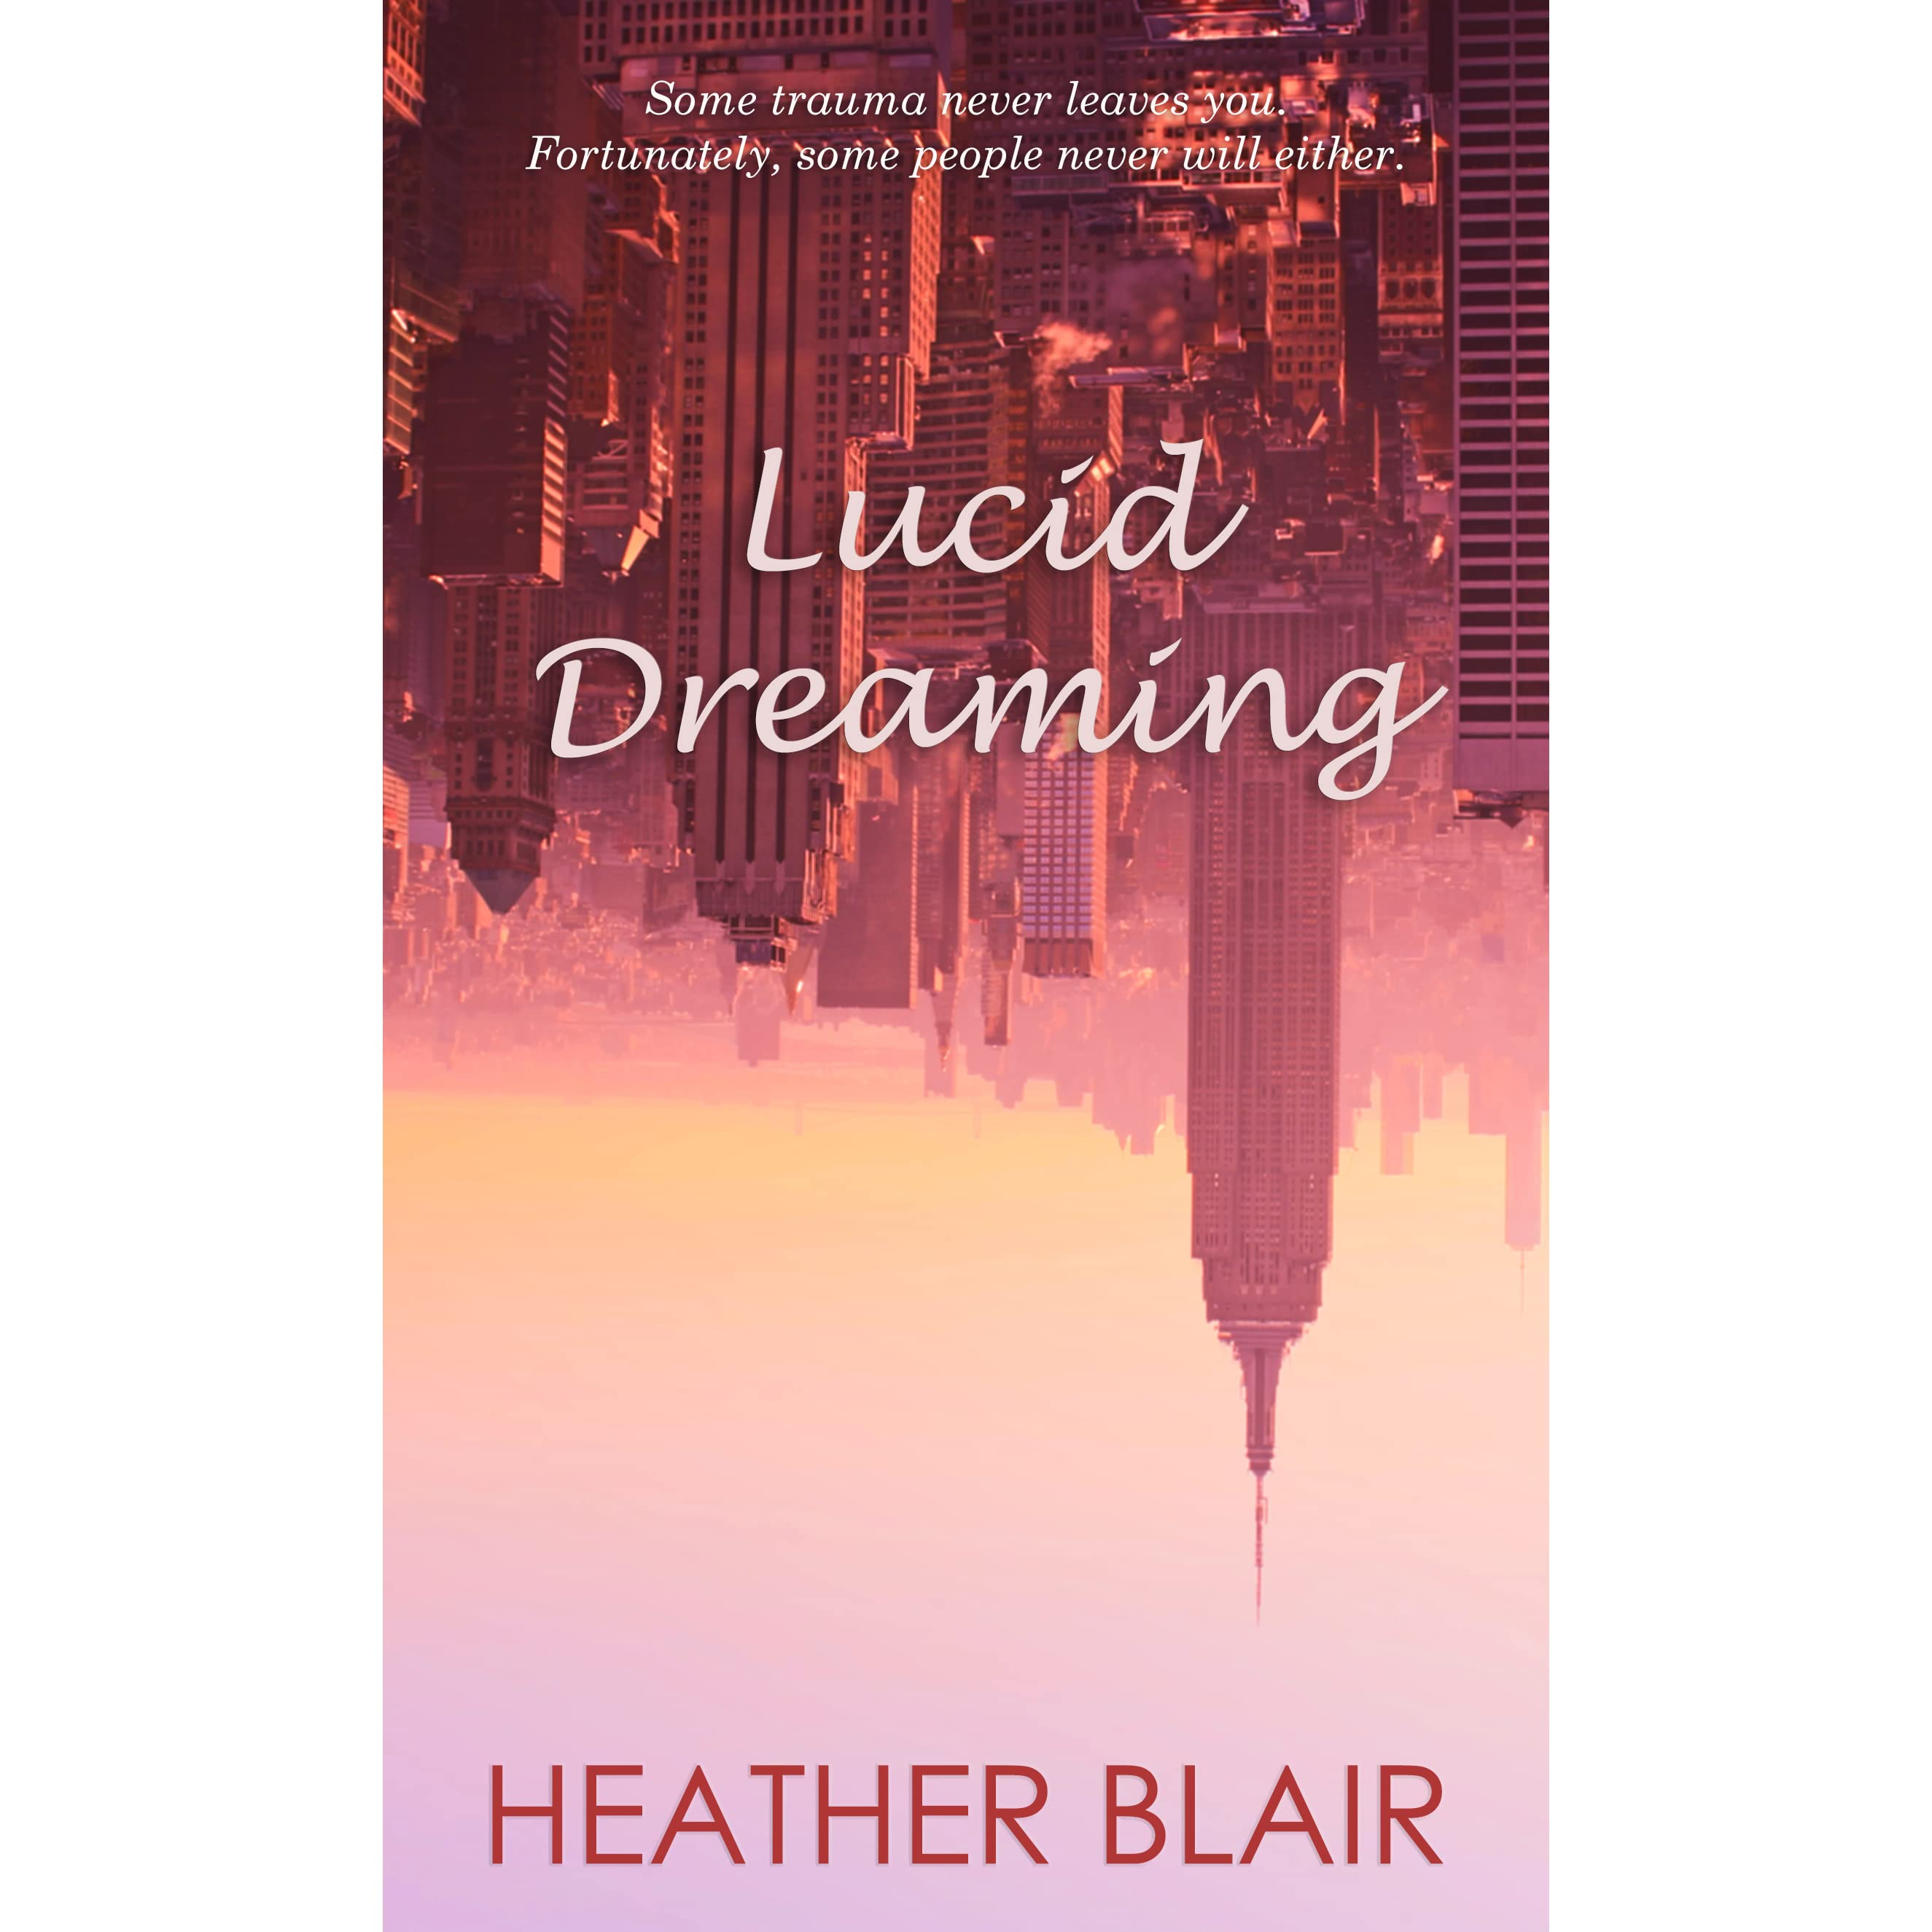 Lucid Dreaming by Heather Blair